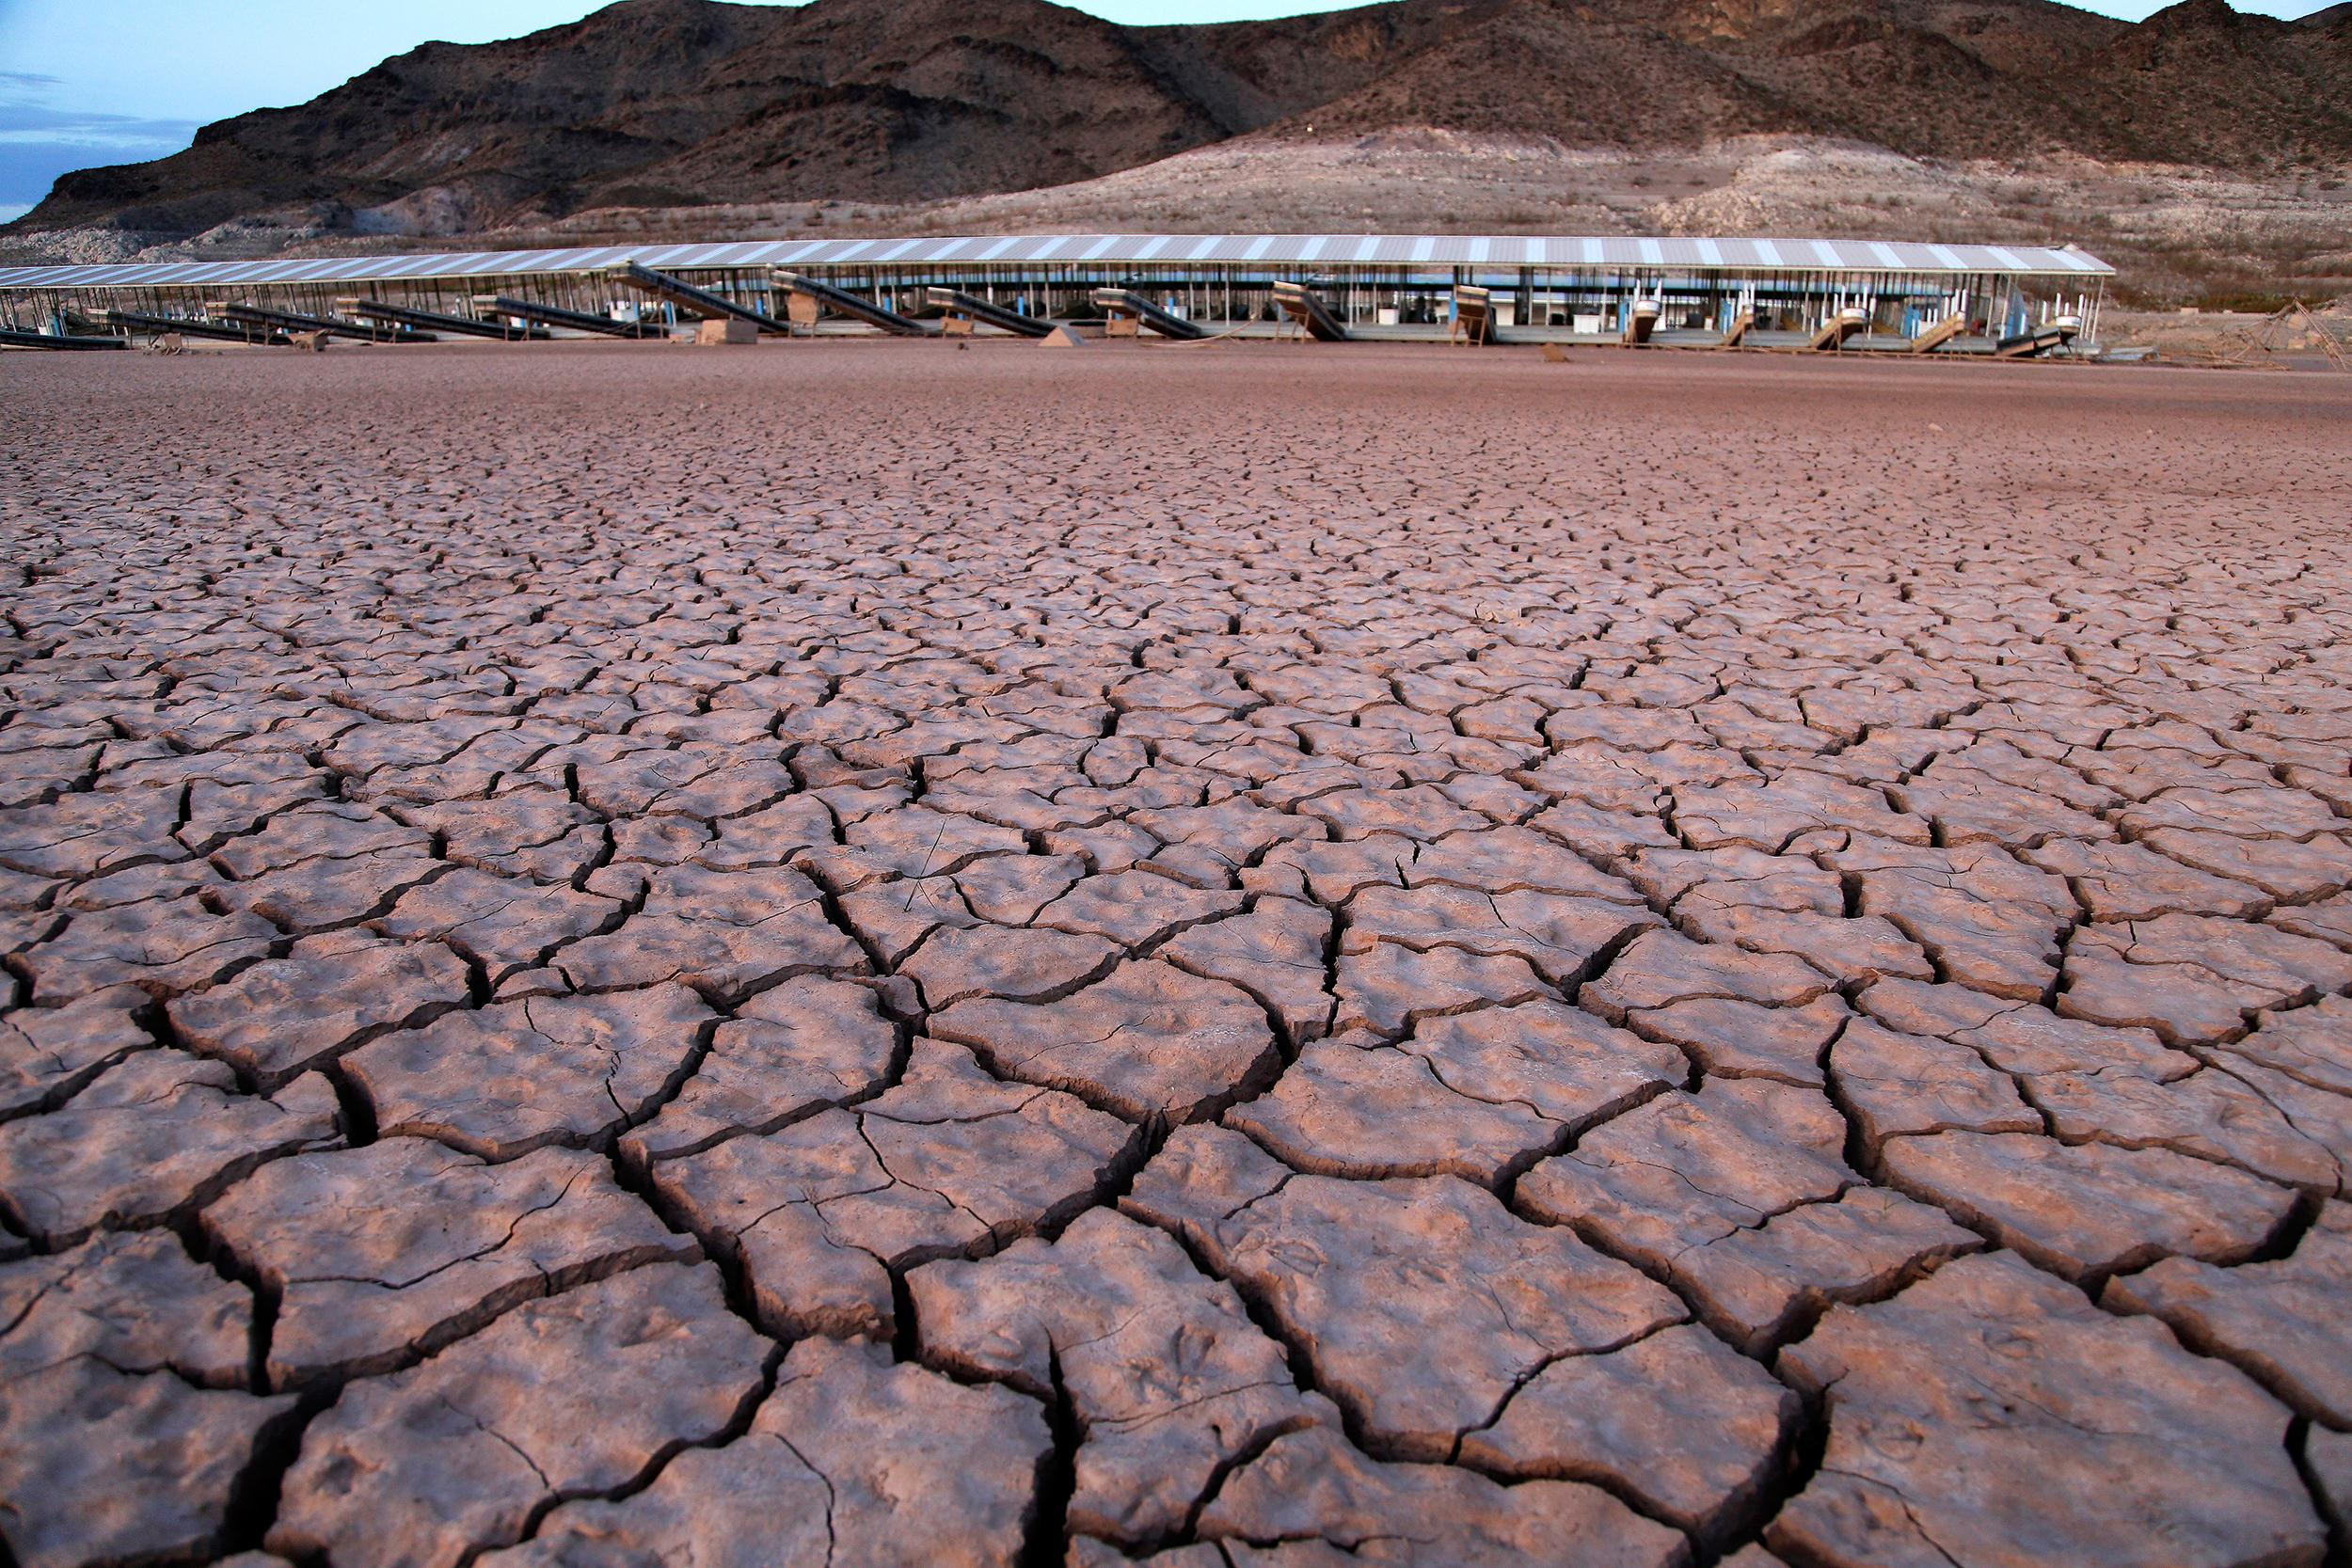 Image:  Echo Bay Marina sits high and dry next to Lake Mead in the Lake Mead National Recreation Area in Nevada